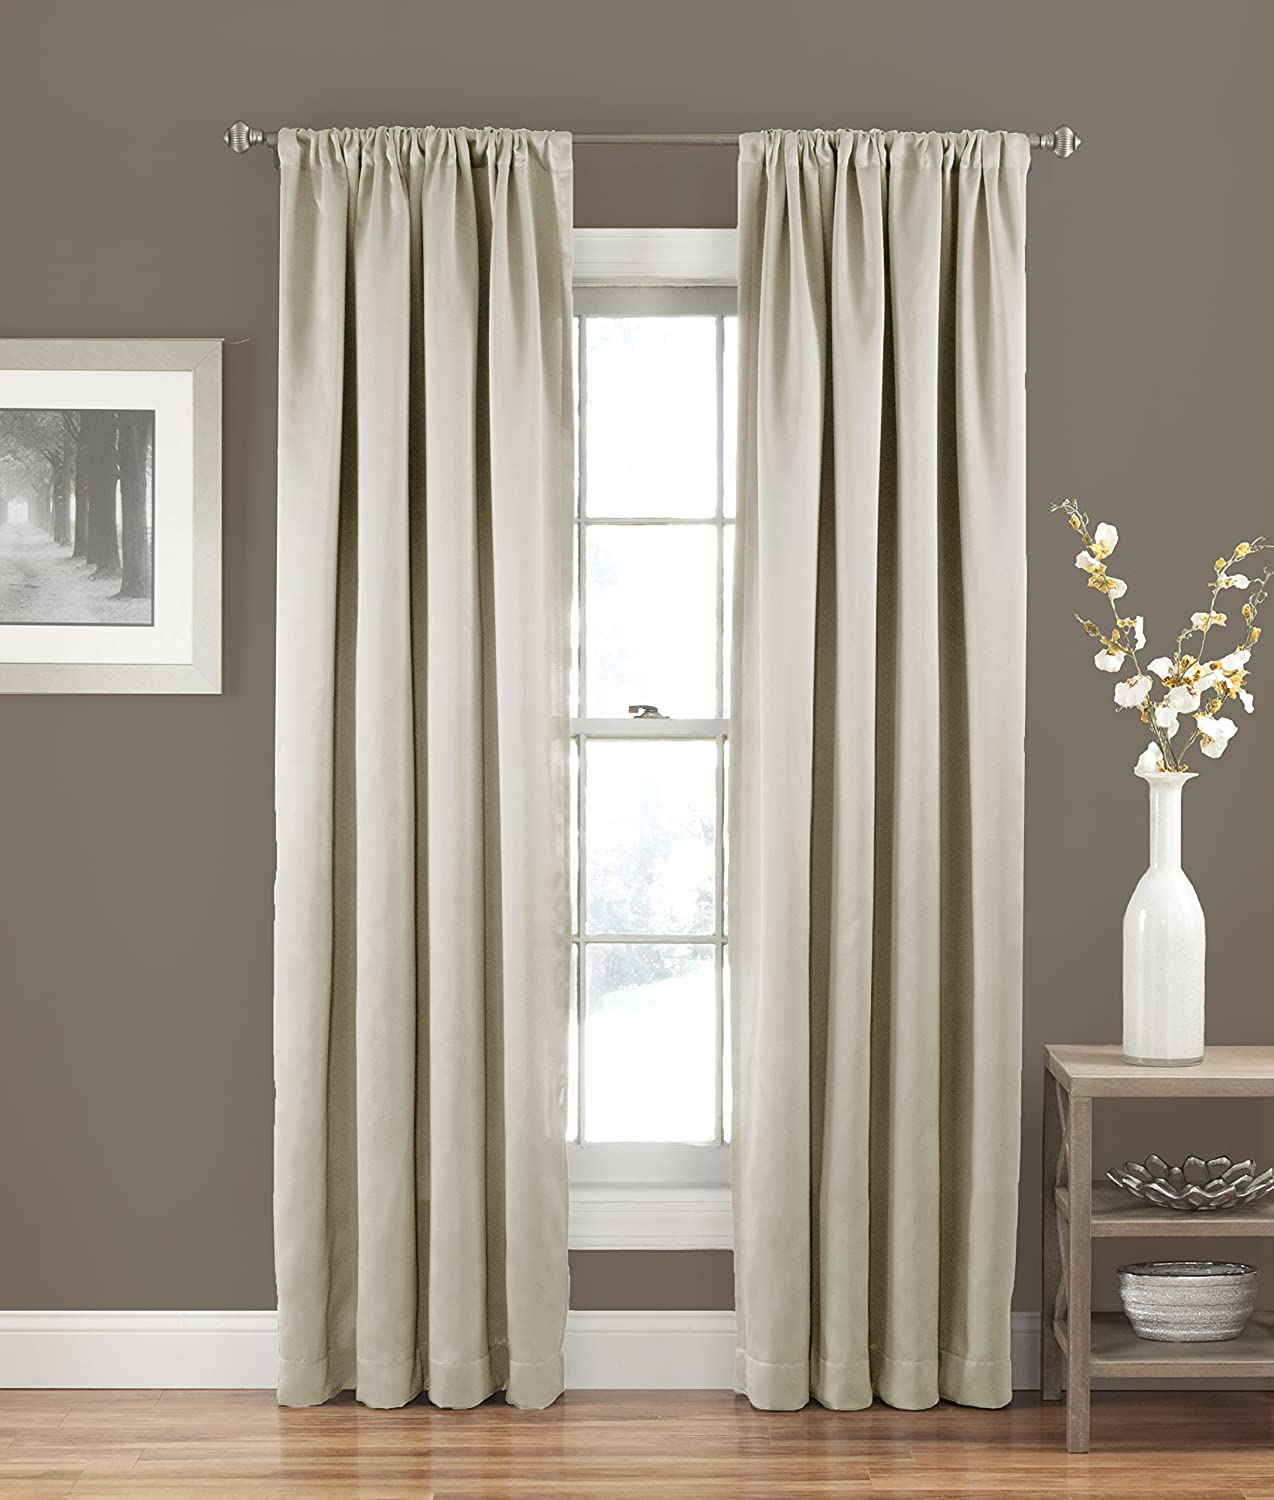 ECLIPSE Room Darkening Curtains for Bedroom - Solid Thermapanel 54